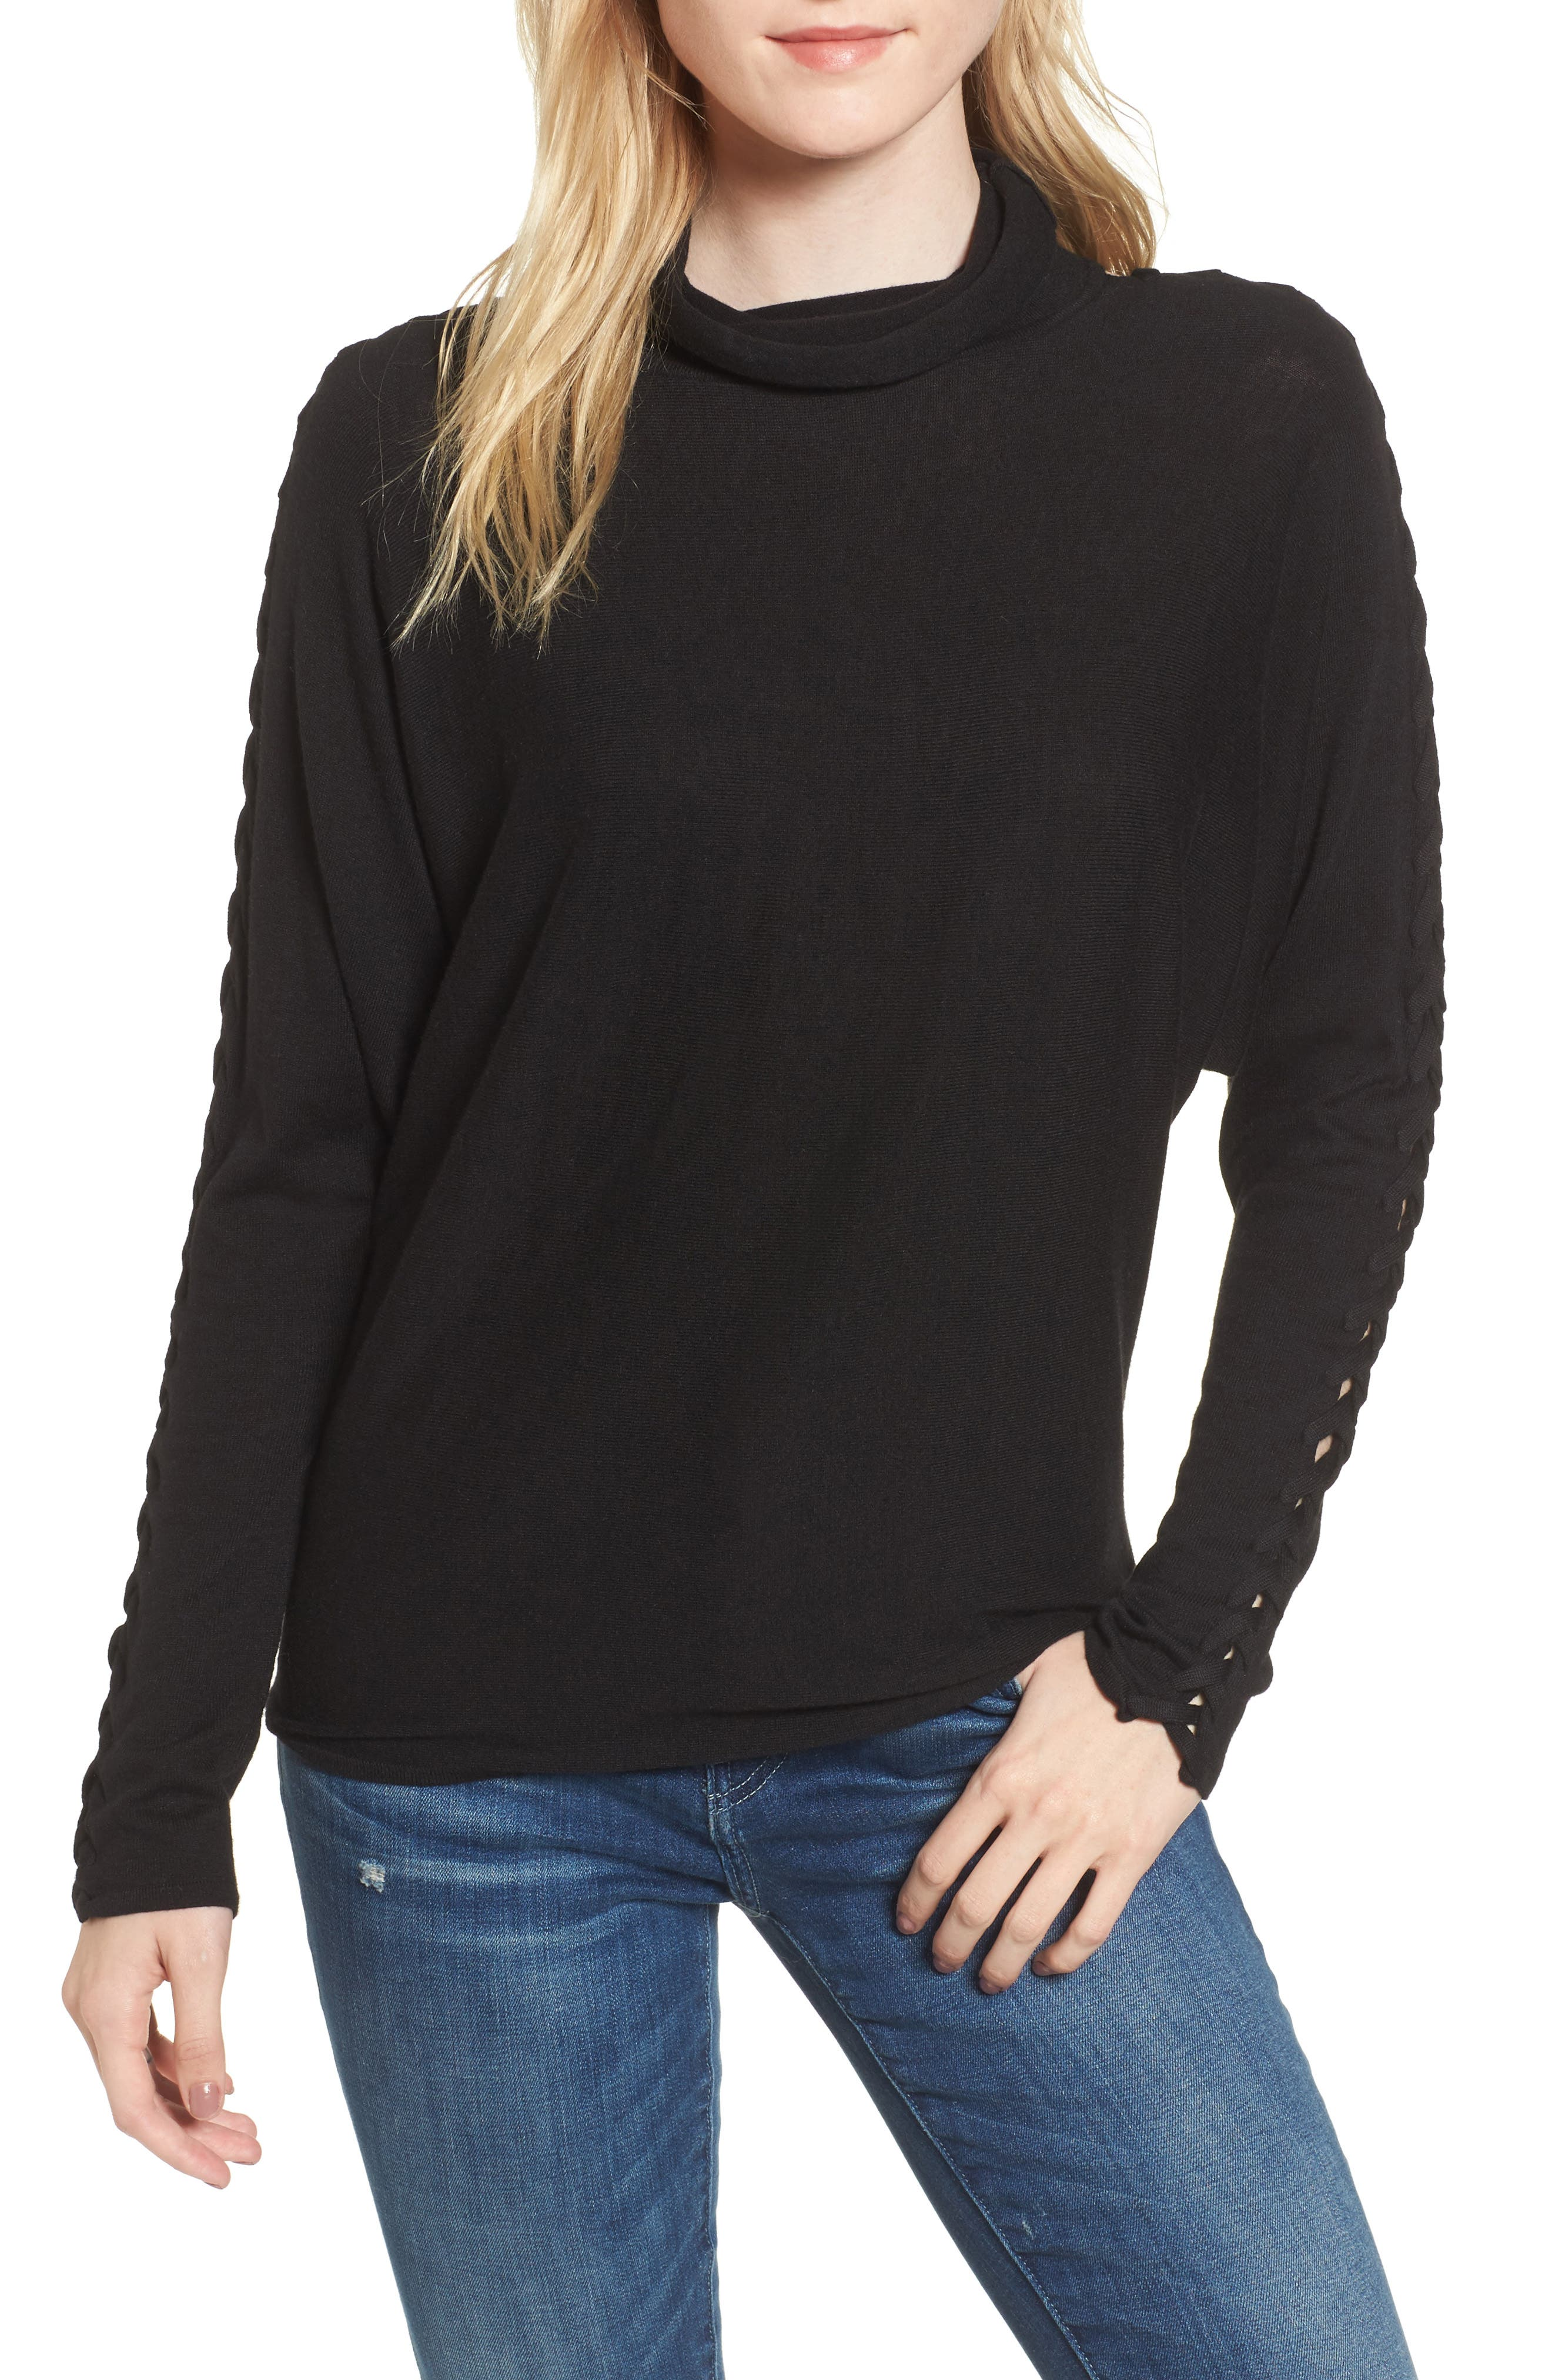 Victoire Turtleneck Sweater,                             Main thumbnail 1, color,